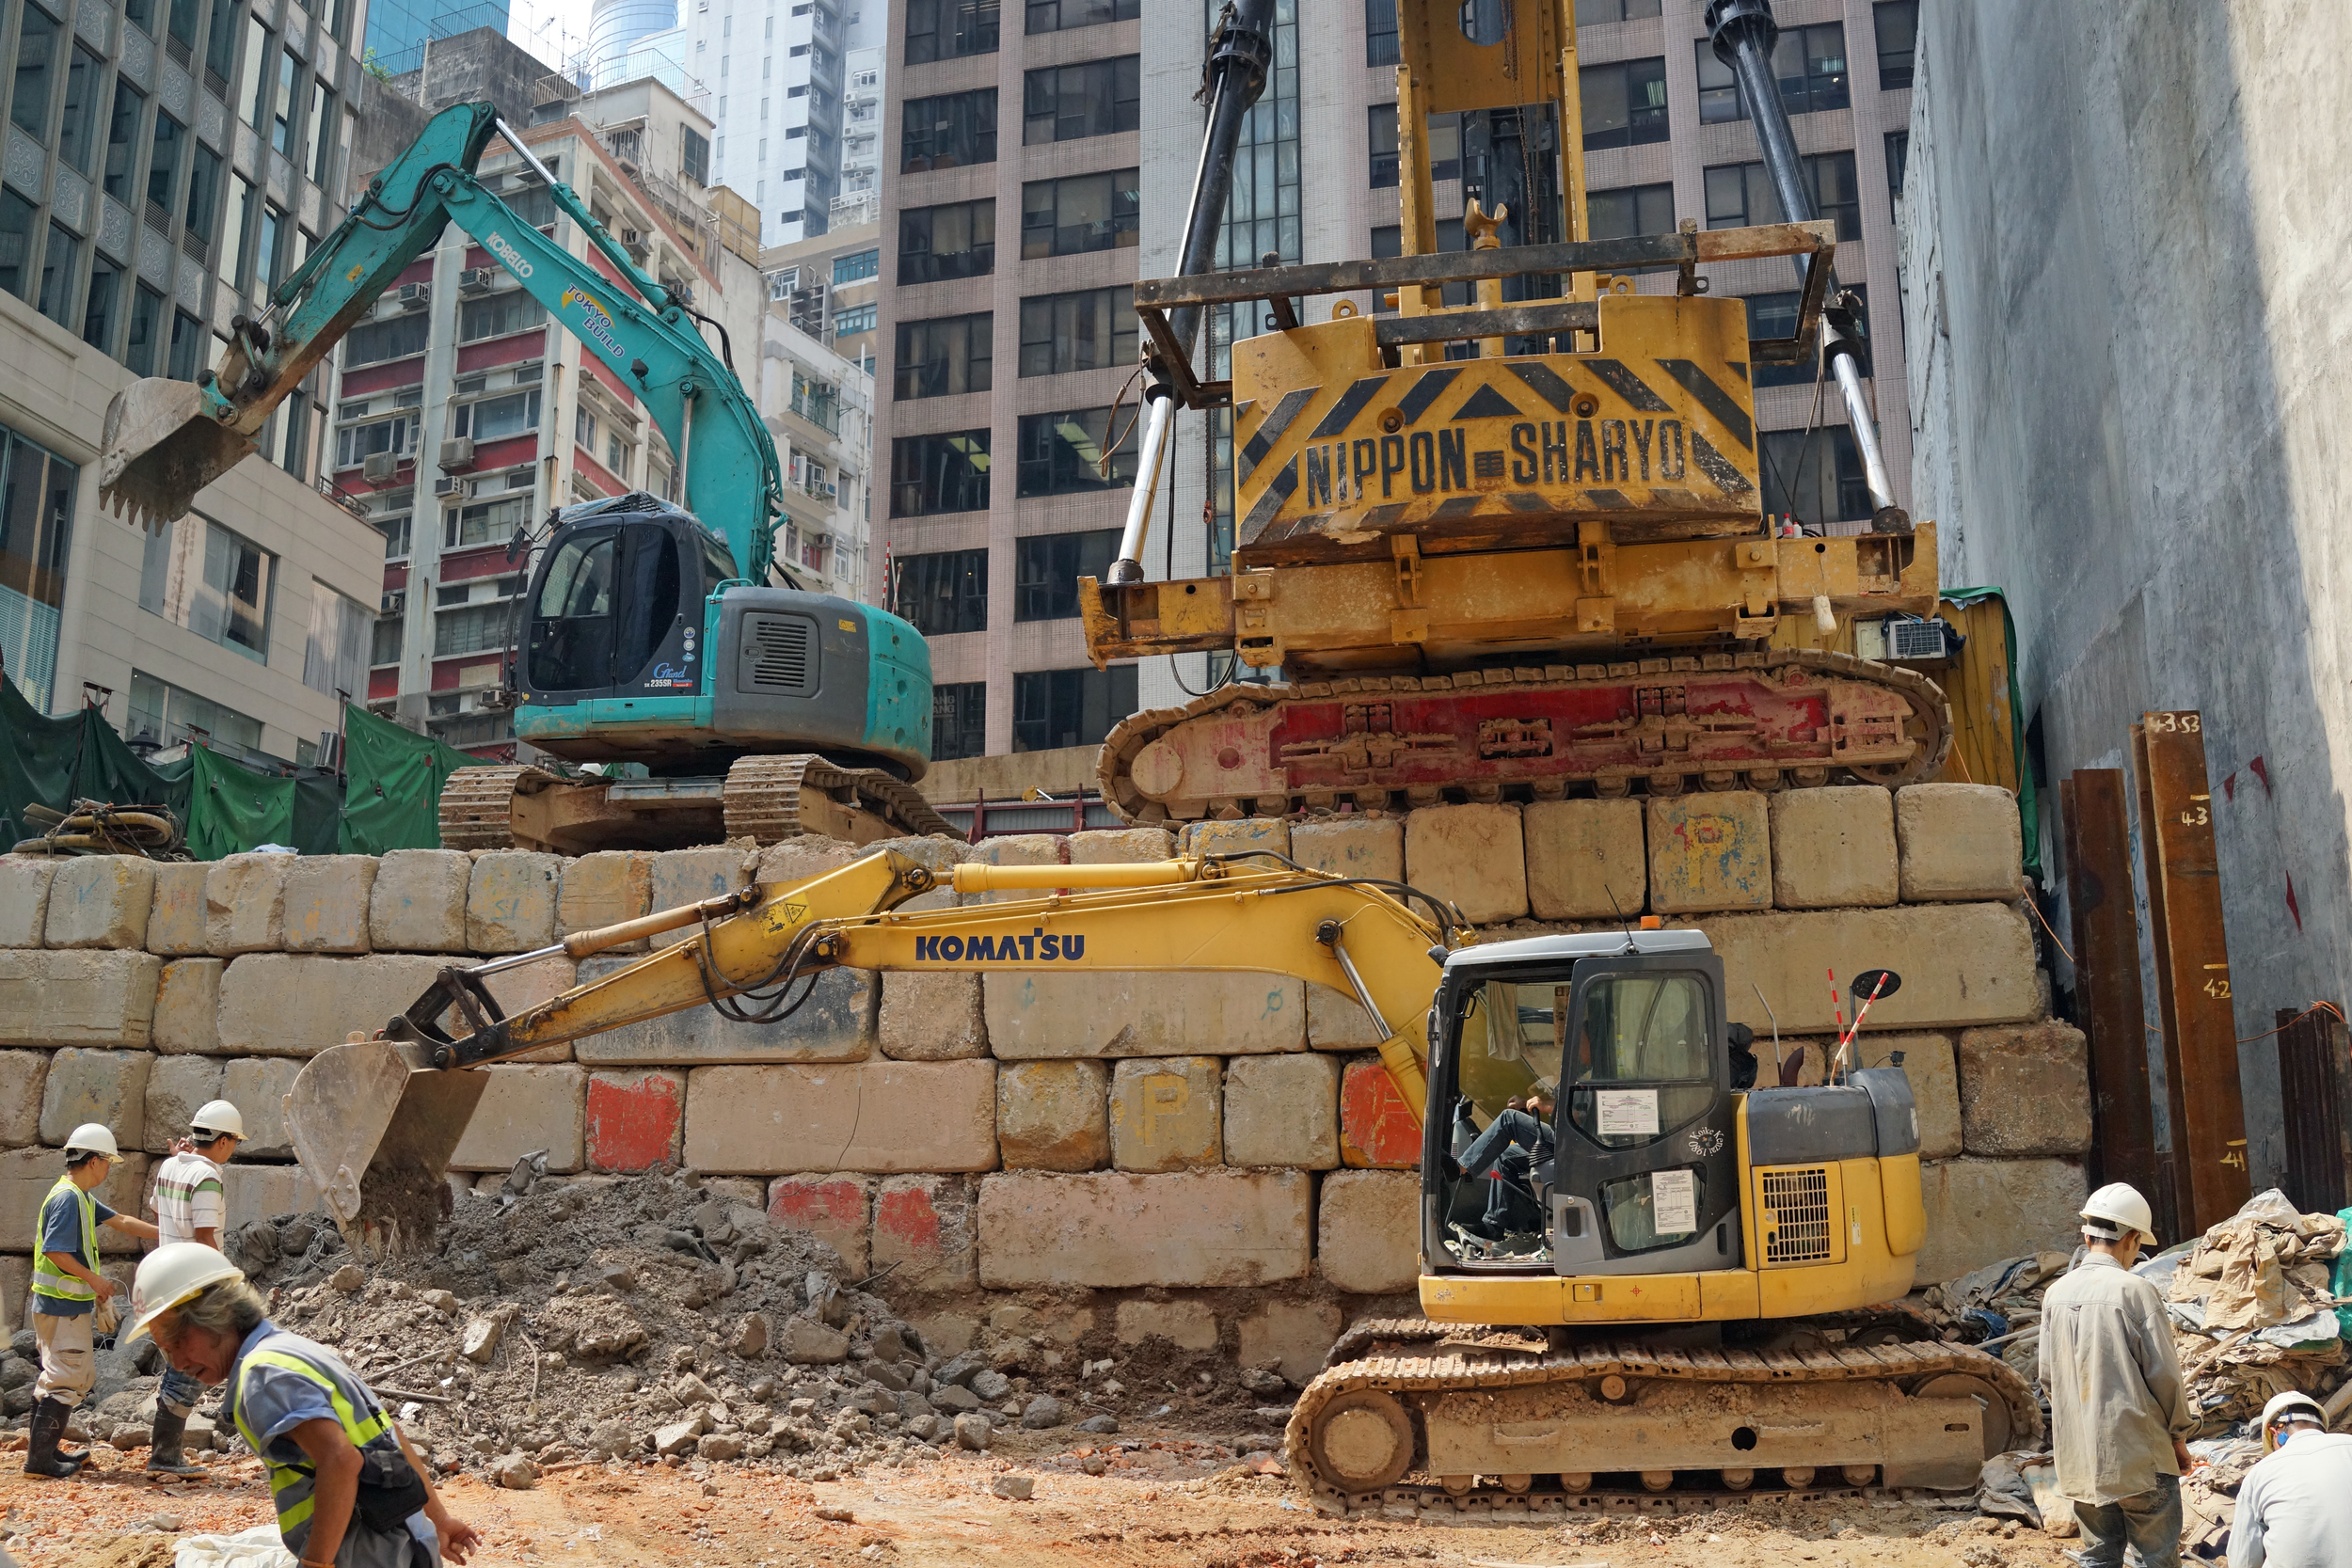 A monster pile driver on some monster bricks at a building site in Central District